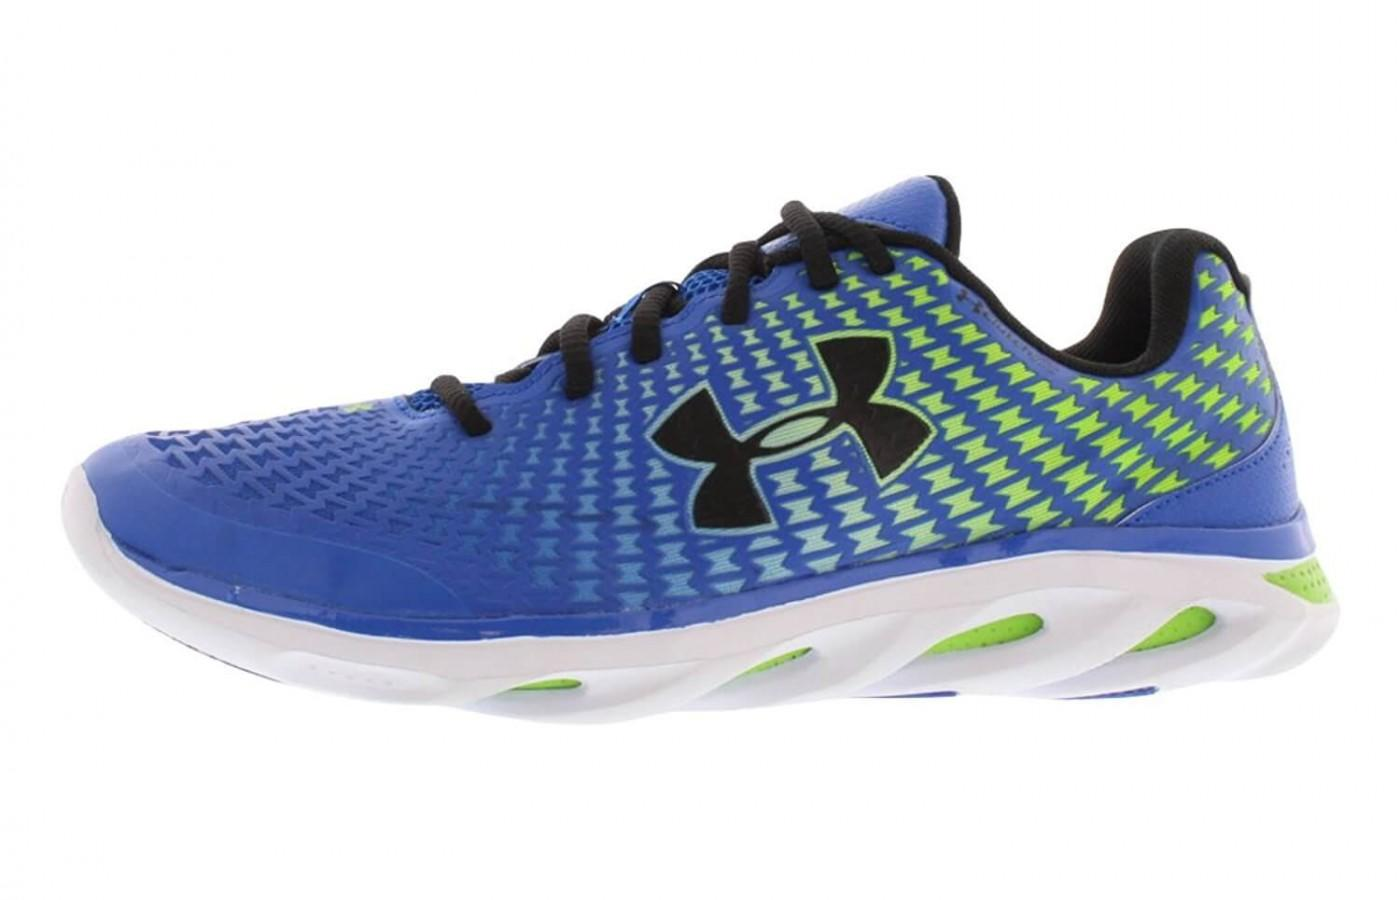 The Under Armour Spine Clutch sideview with logo